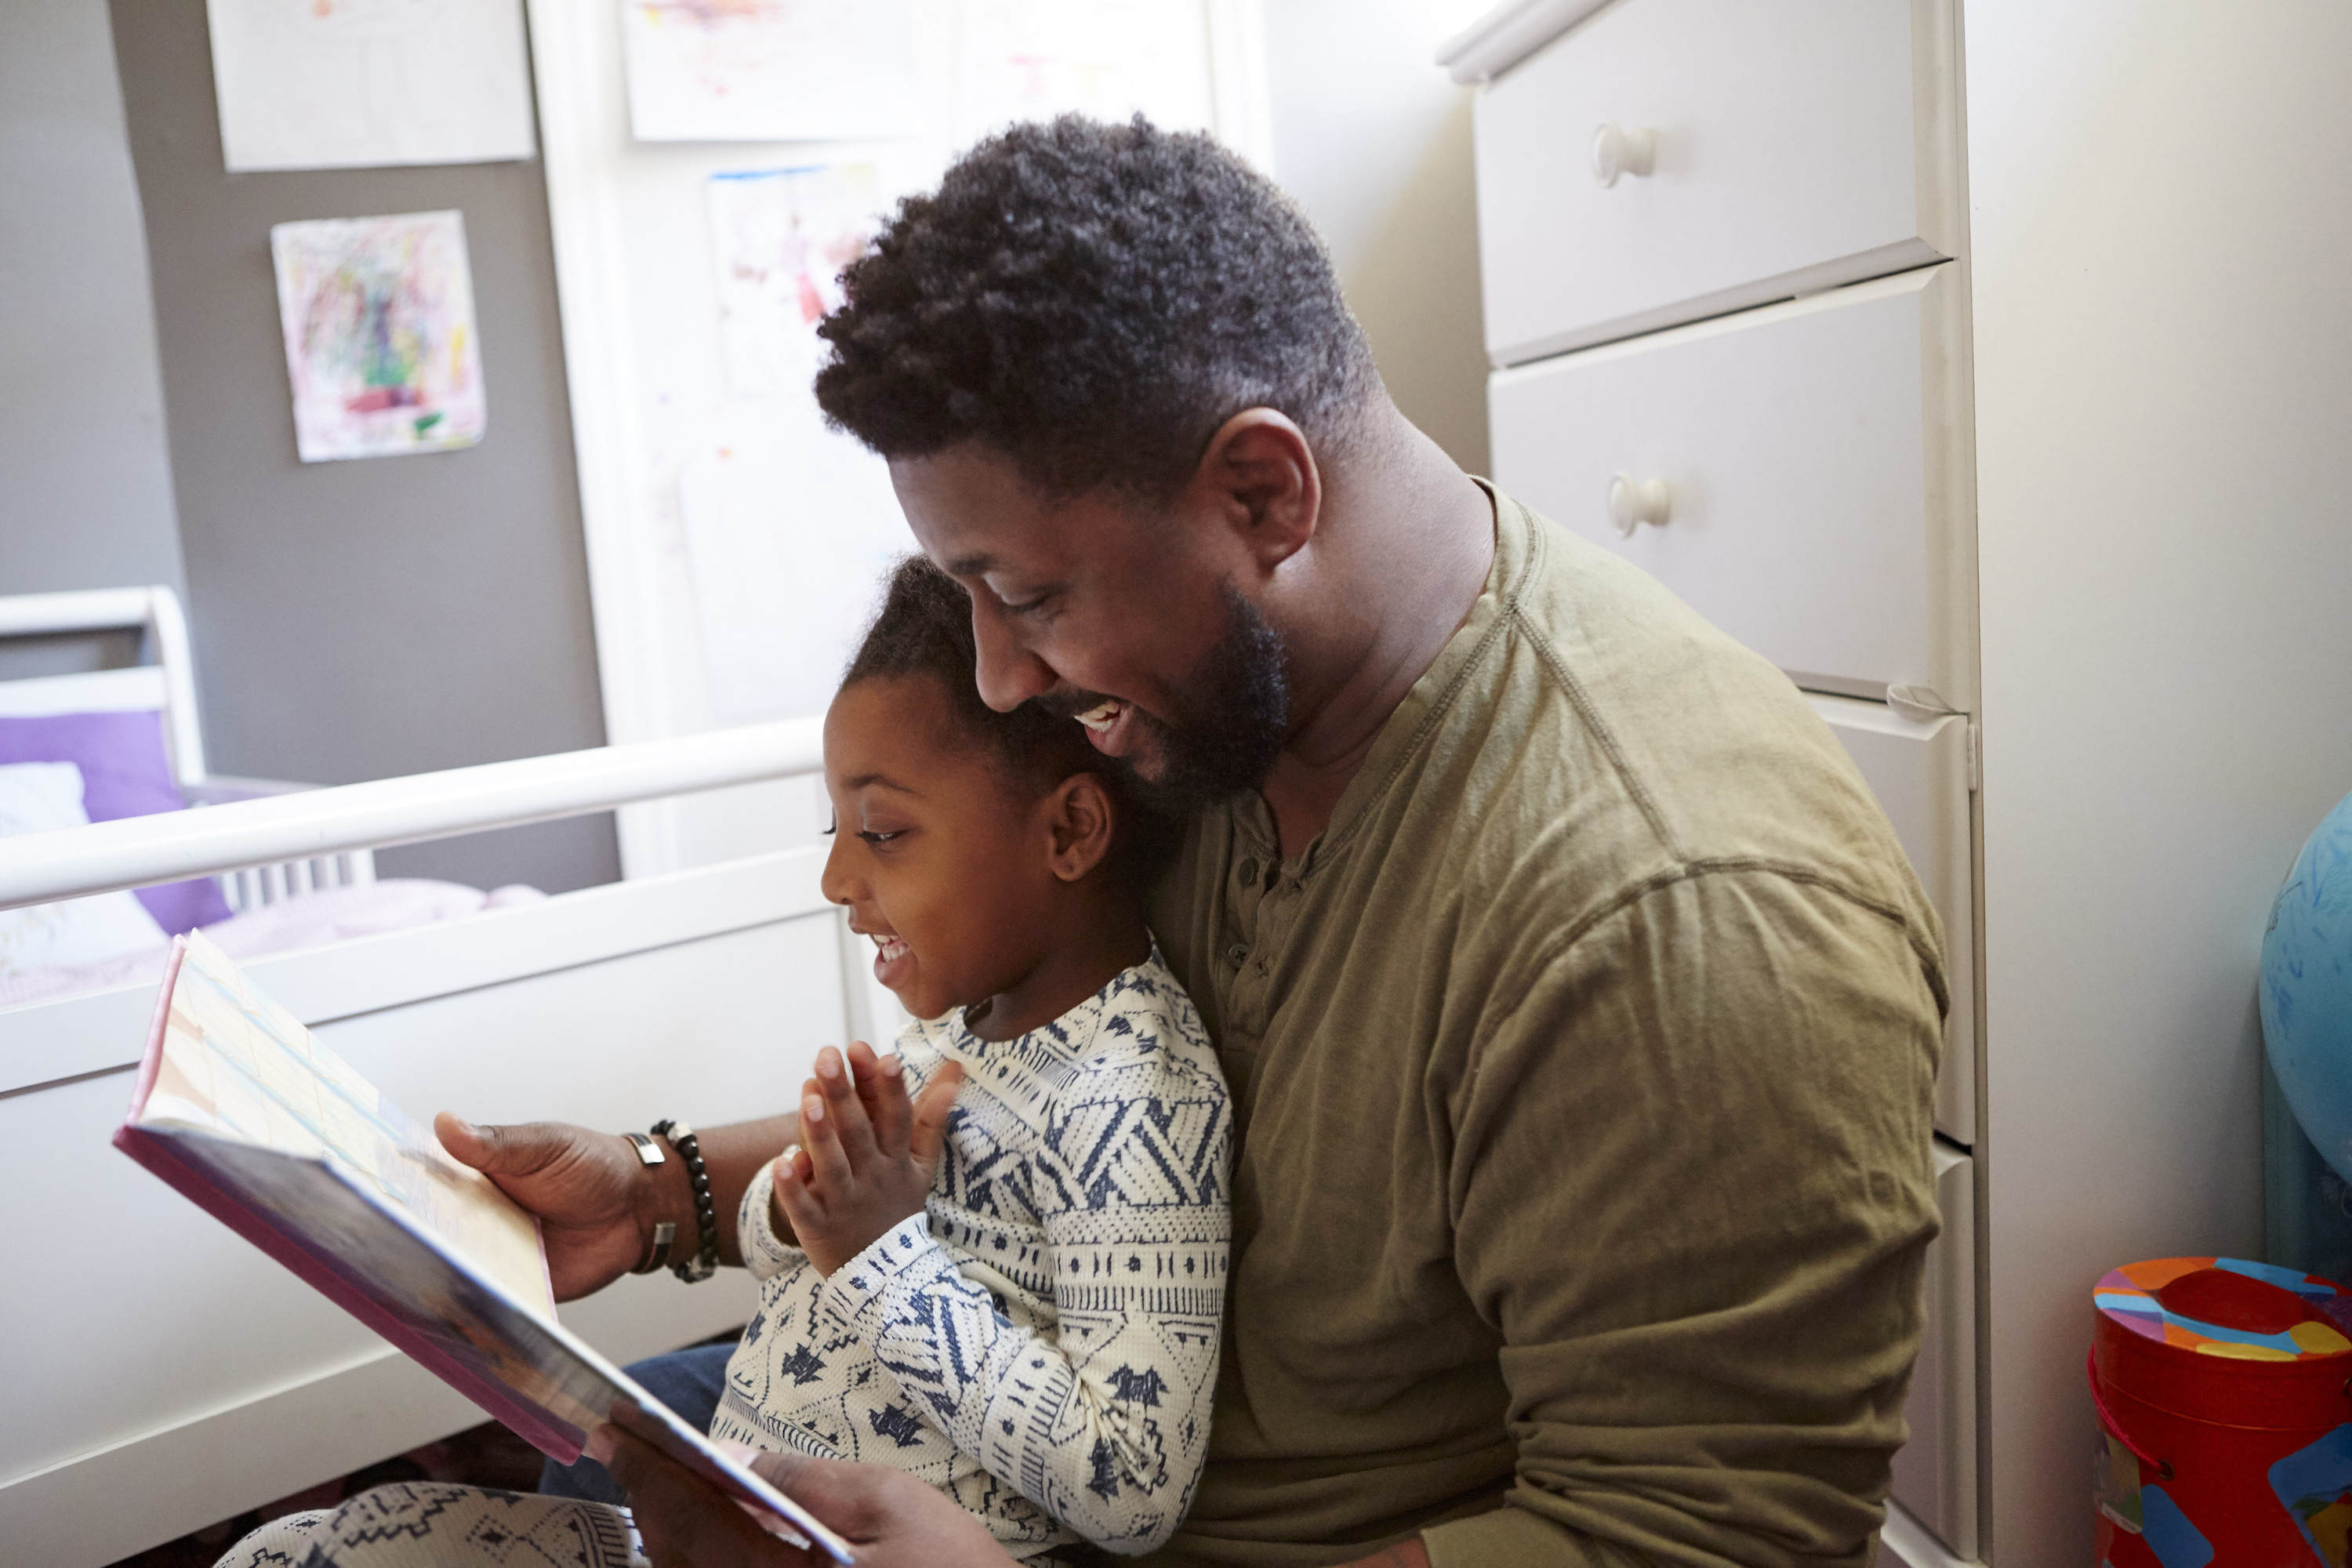 The scientific benefits of dads reading bedtime stories - Motherly